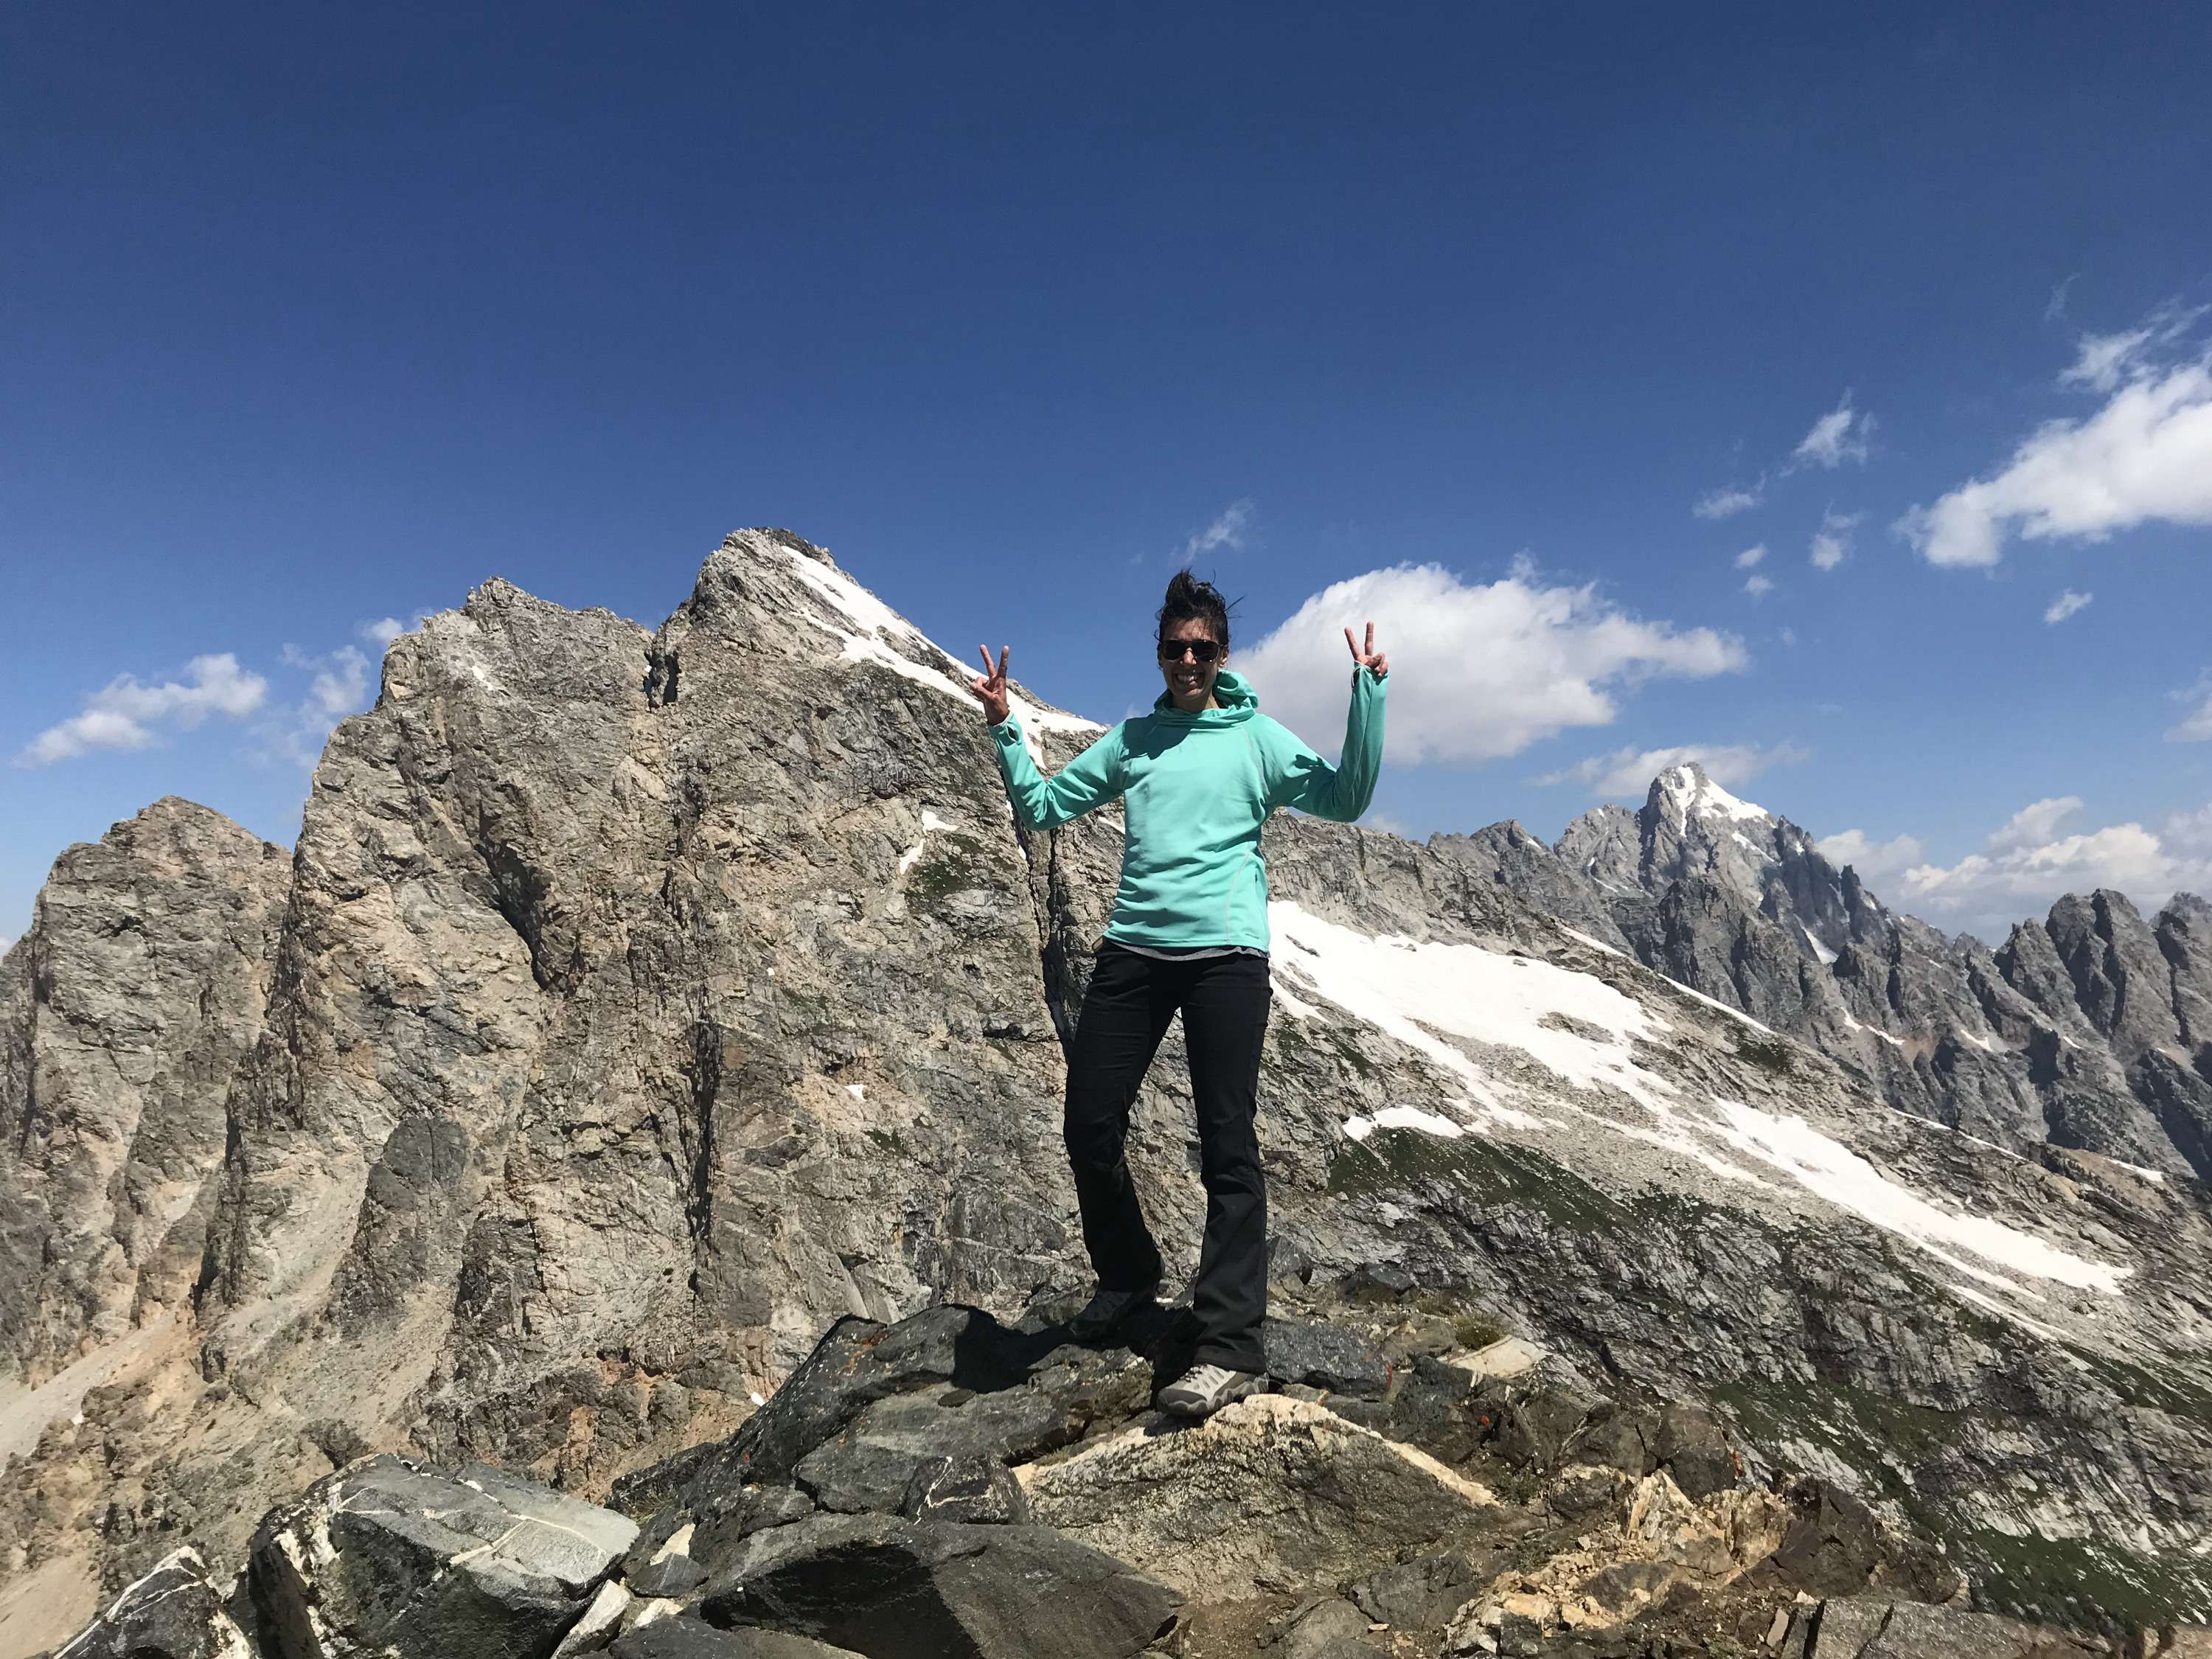 Static Peak summit in the Tetons